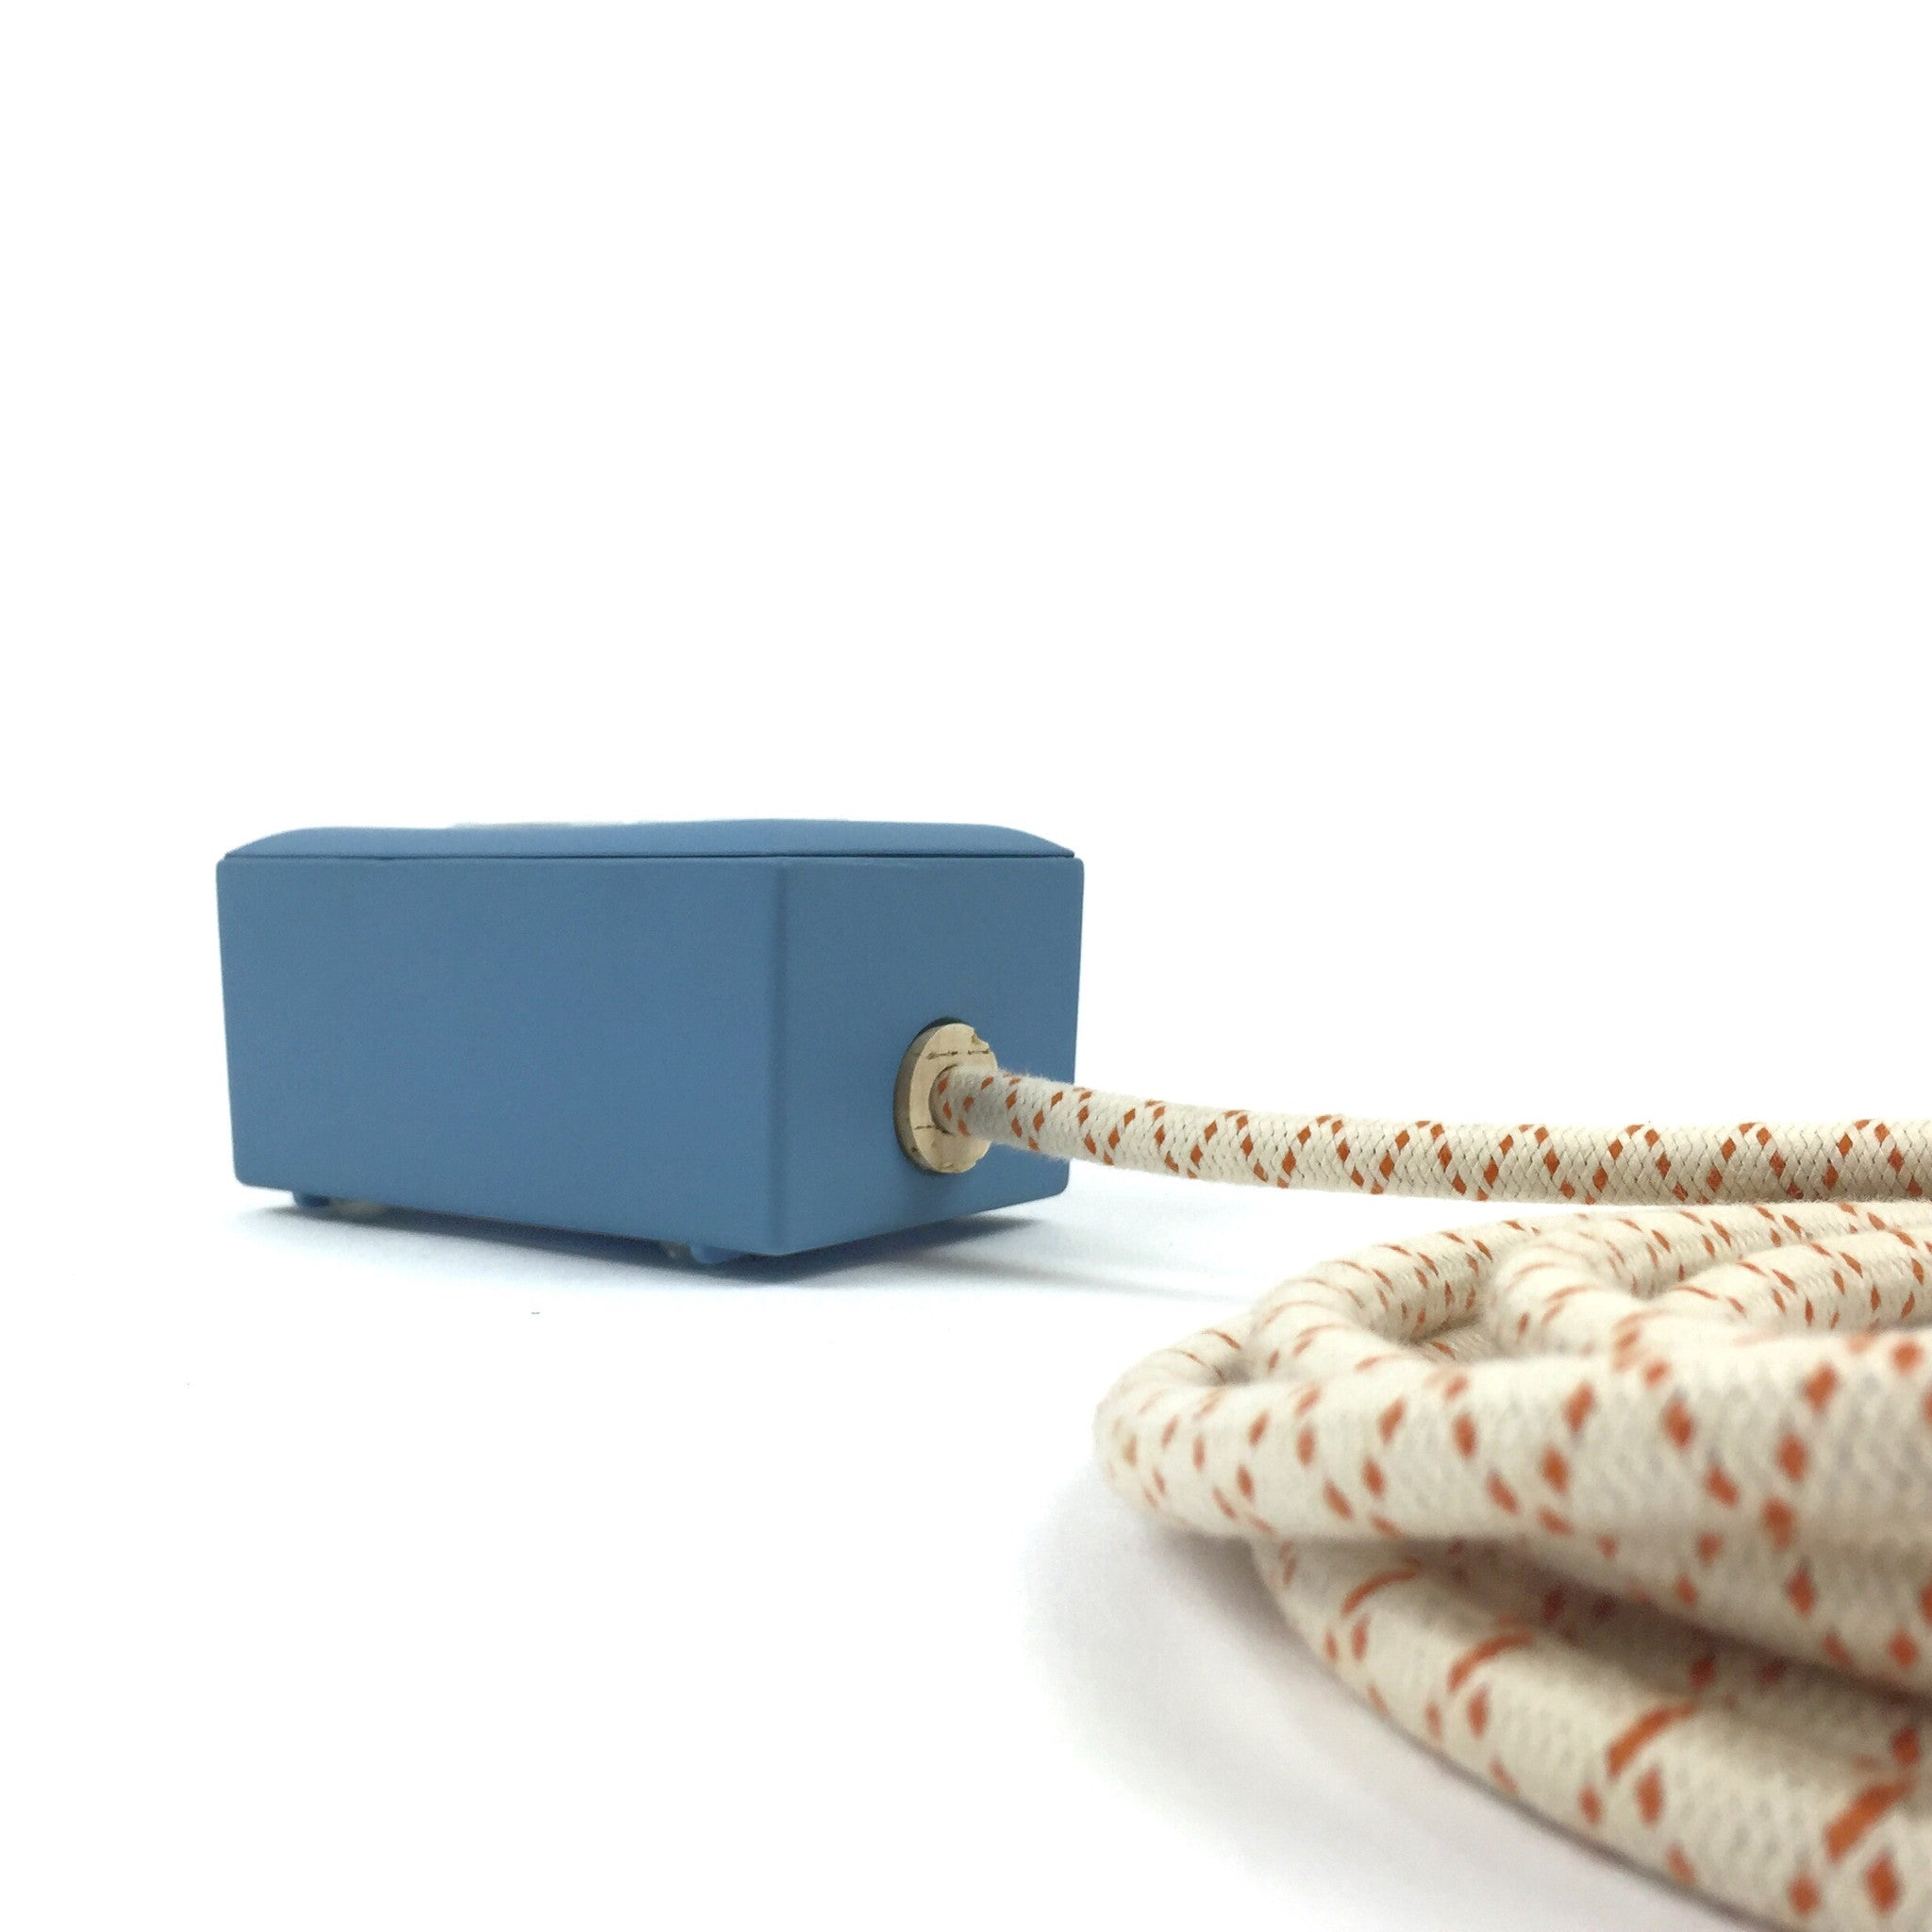 New! Martha Blue Extō - A Modern Dual-Tamper-Resistant Outlet, 13-AMP Extension Cord